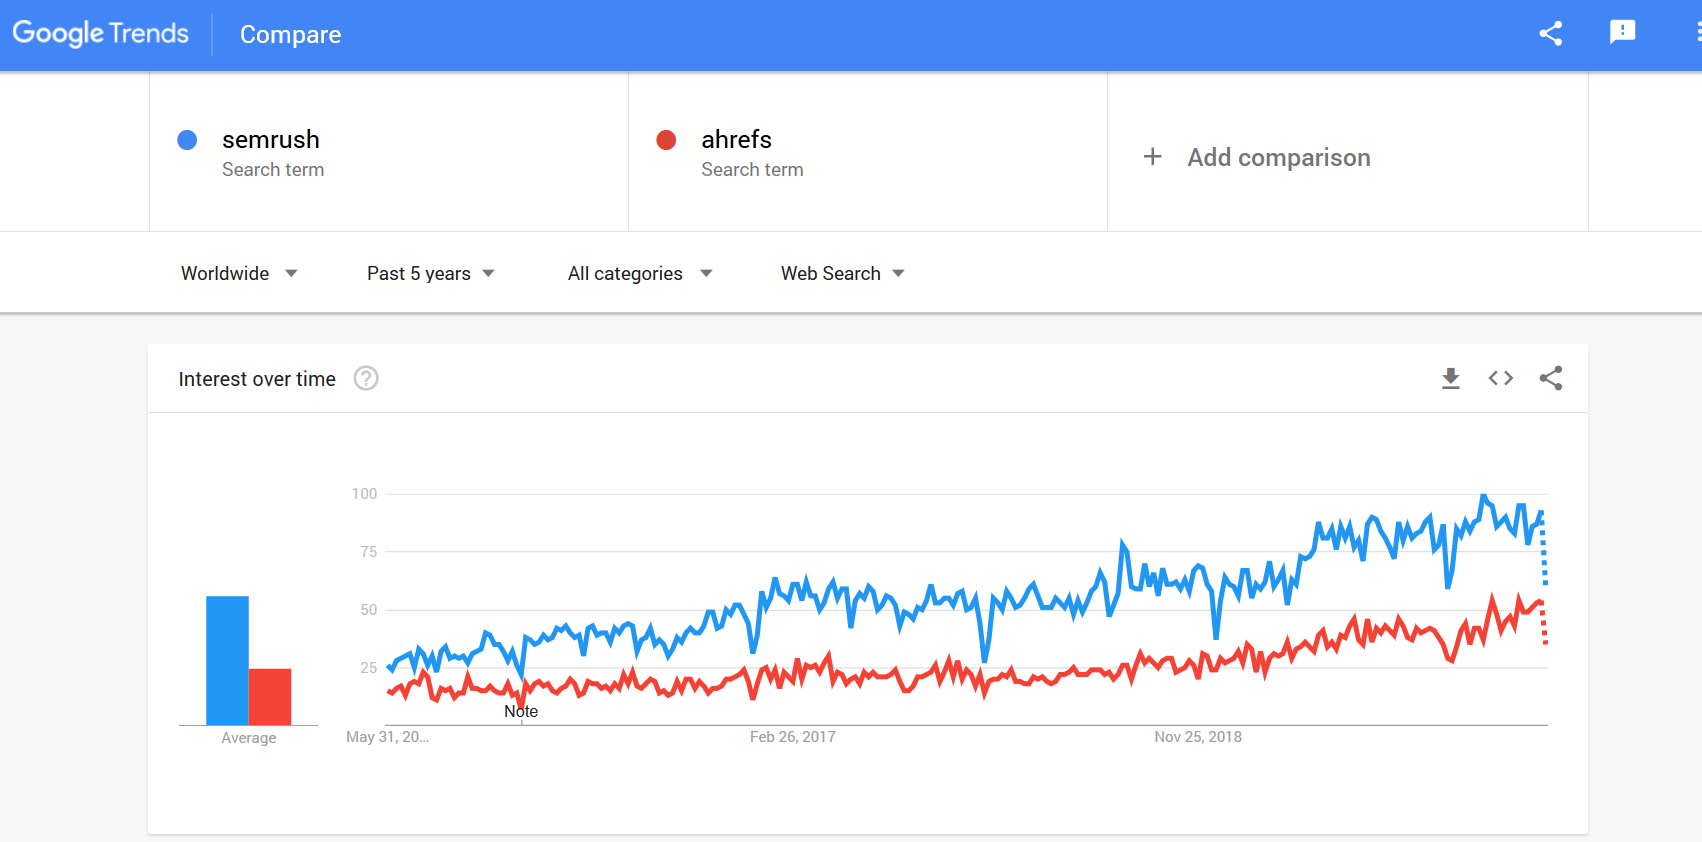 Semrush vs ahrefs review Google Trends